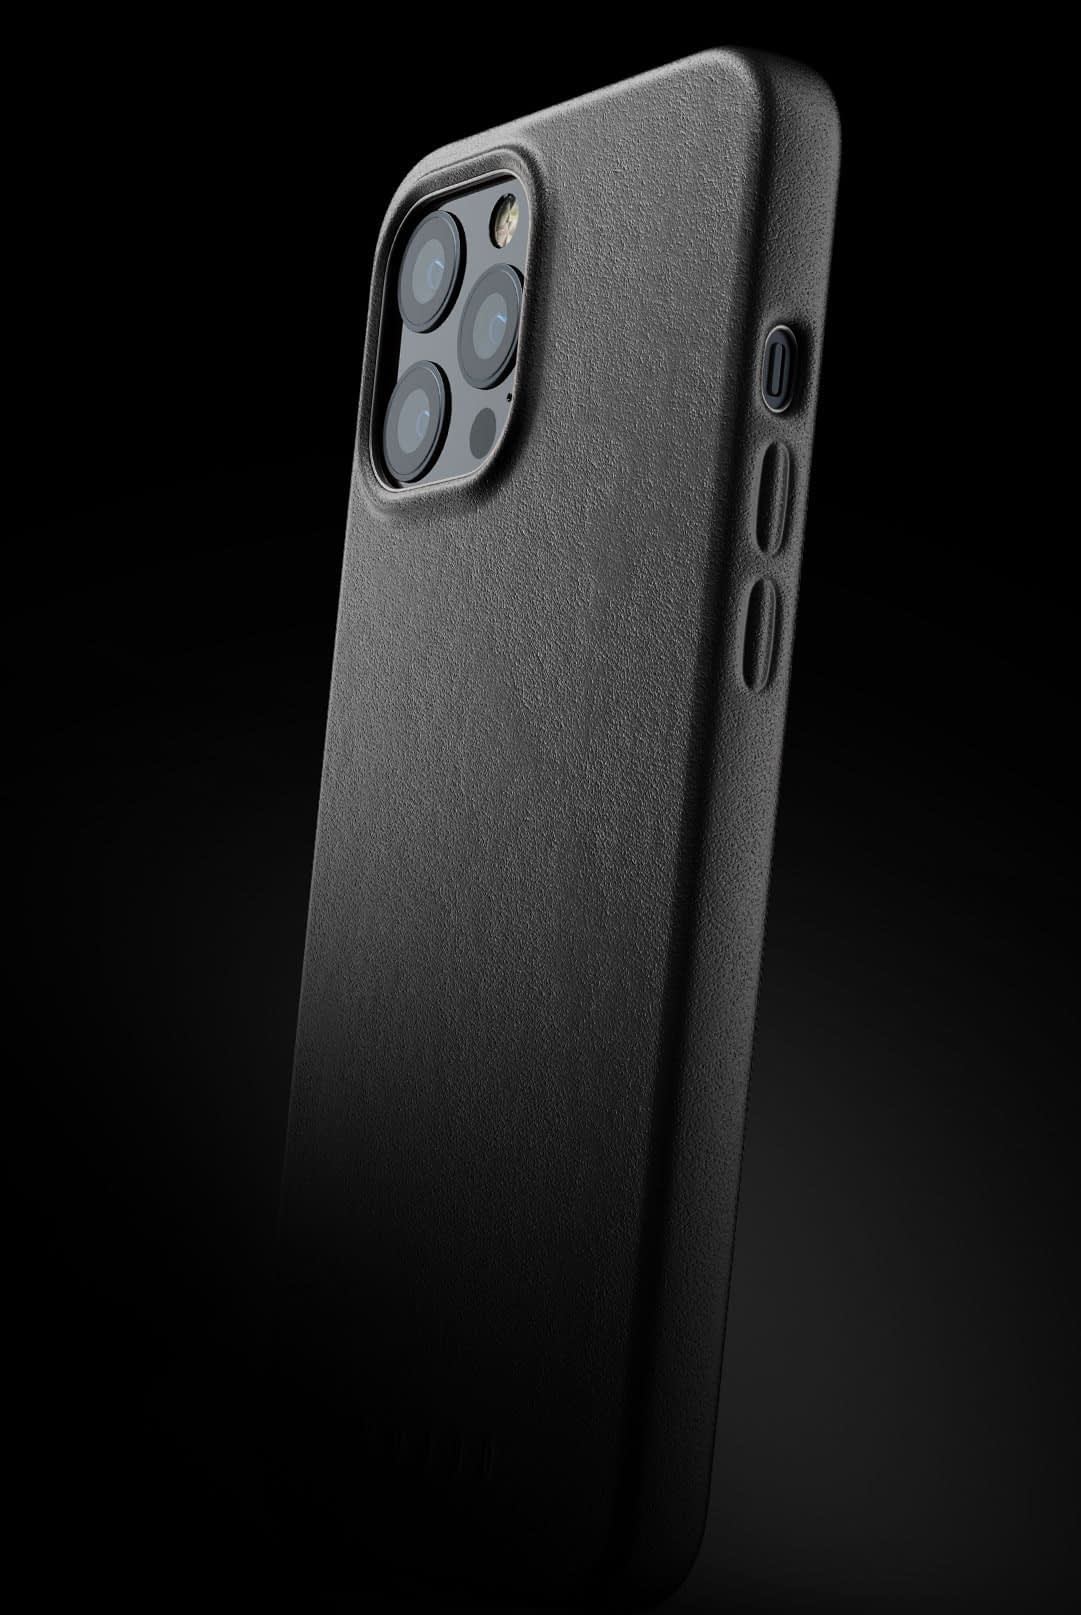 full leather case for iphone 12 pro max black 002